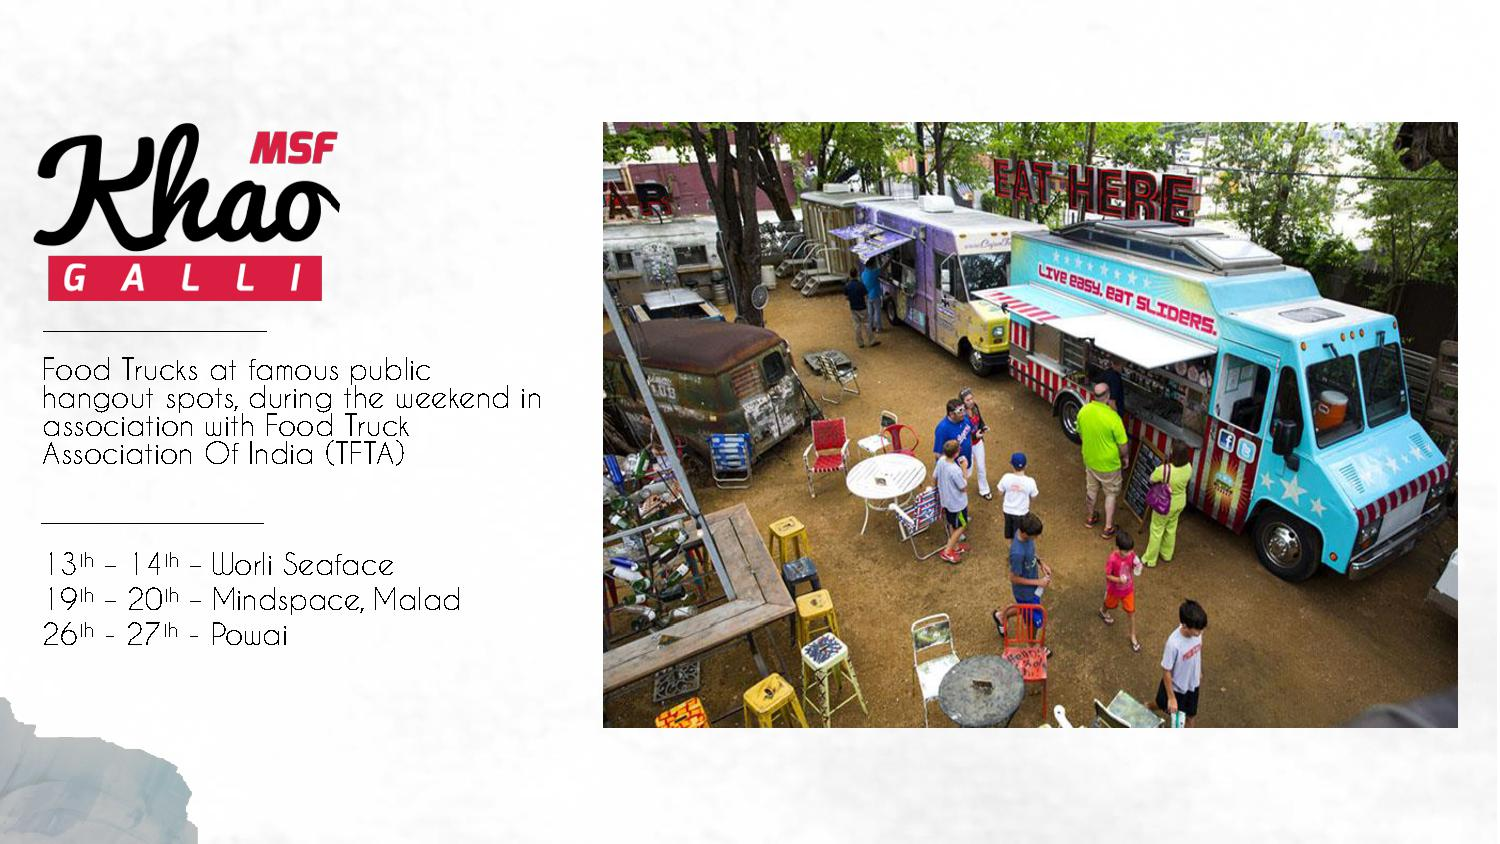 Food Trucks at famous public hangout spots, during the weekend in association with Food Truck Association Of India (TFTA) 13th – 14th – Worli Seaface 19th – 20th – Mindspace, Malad 26th - 27th - Powai